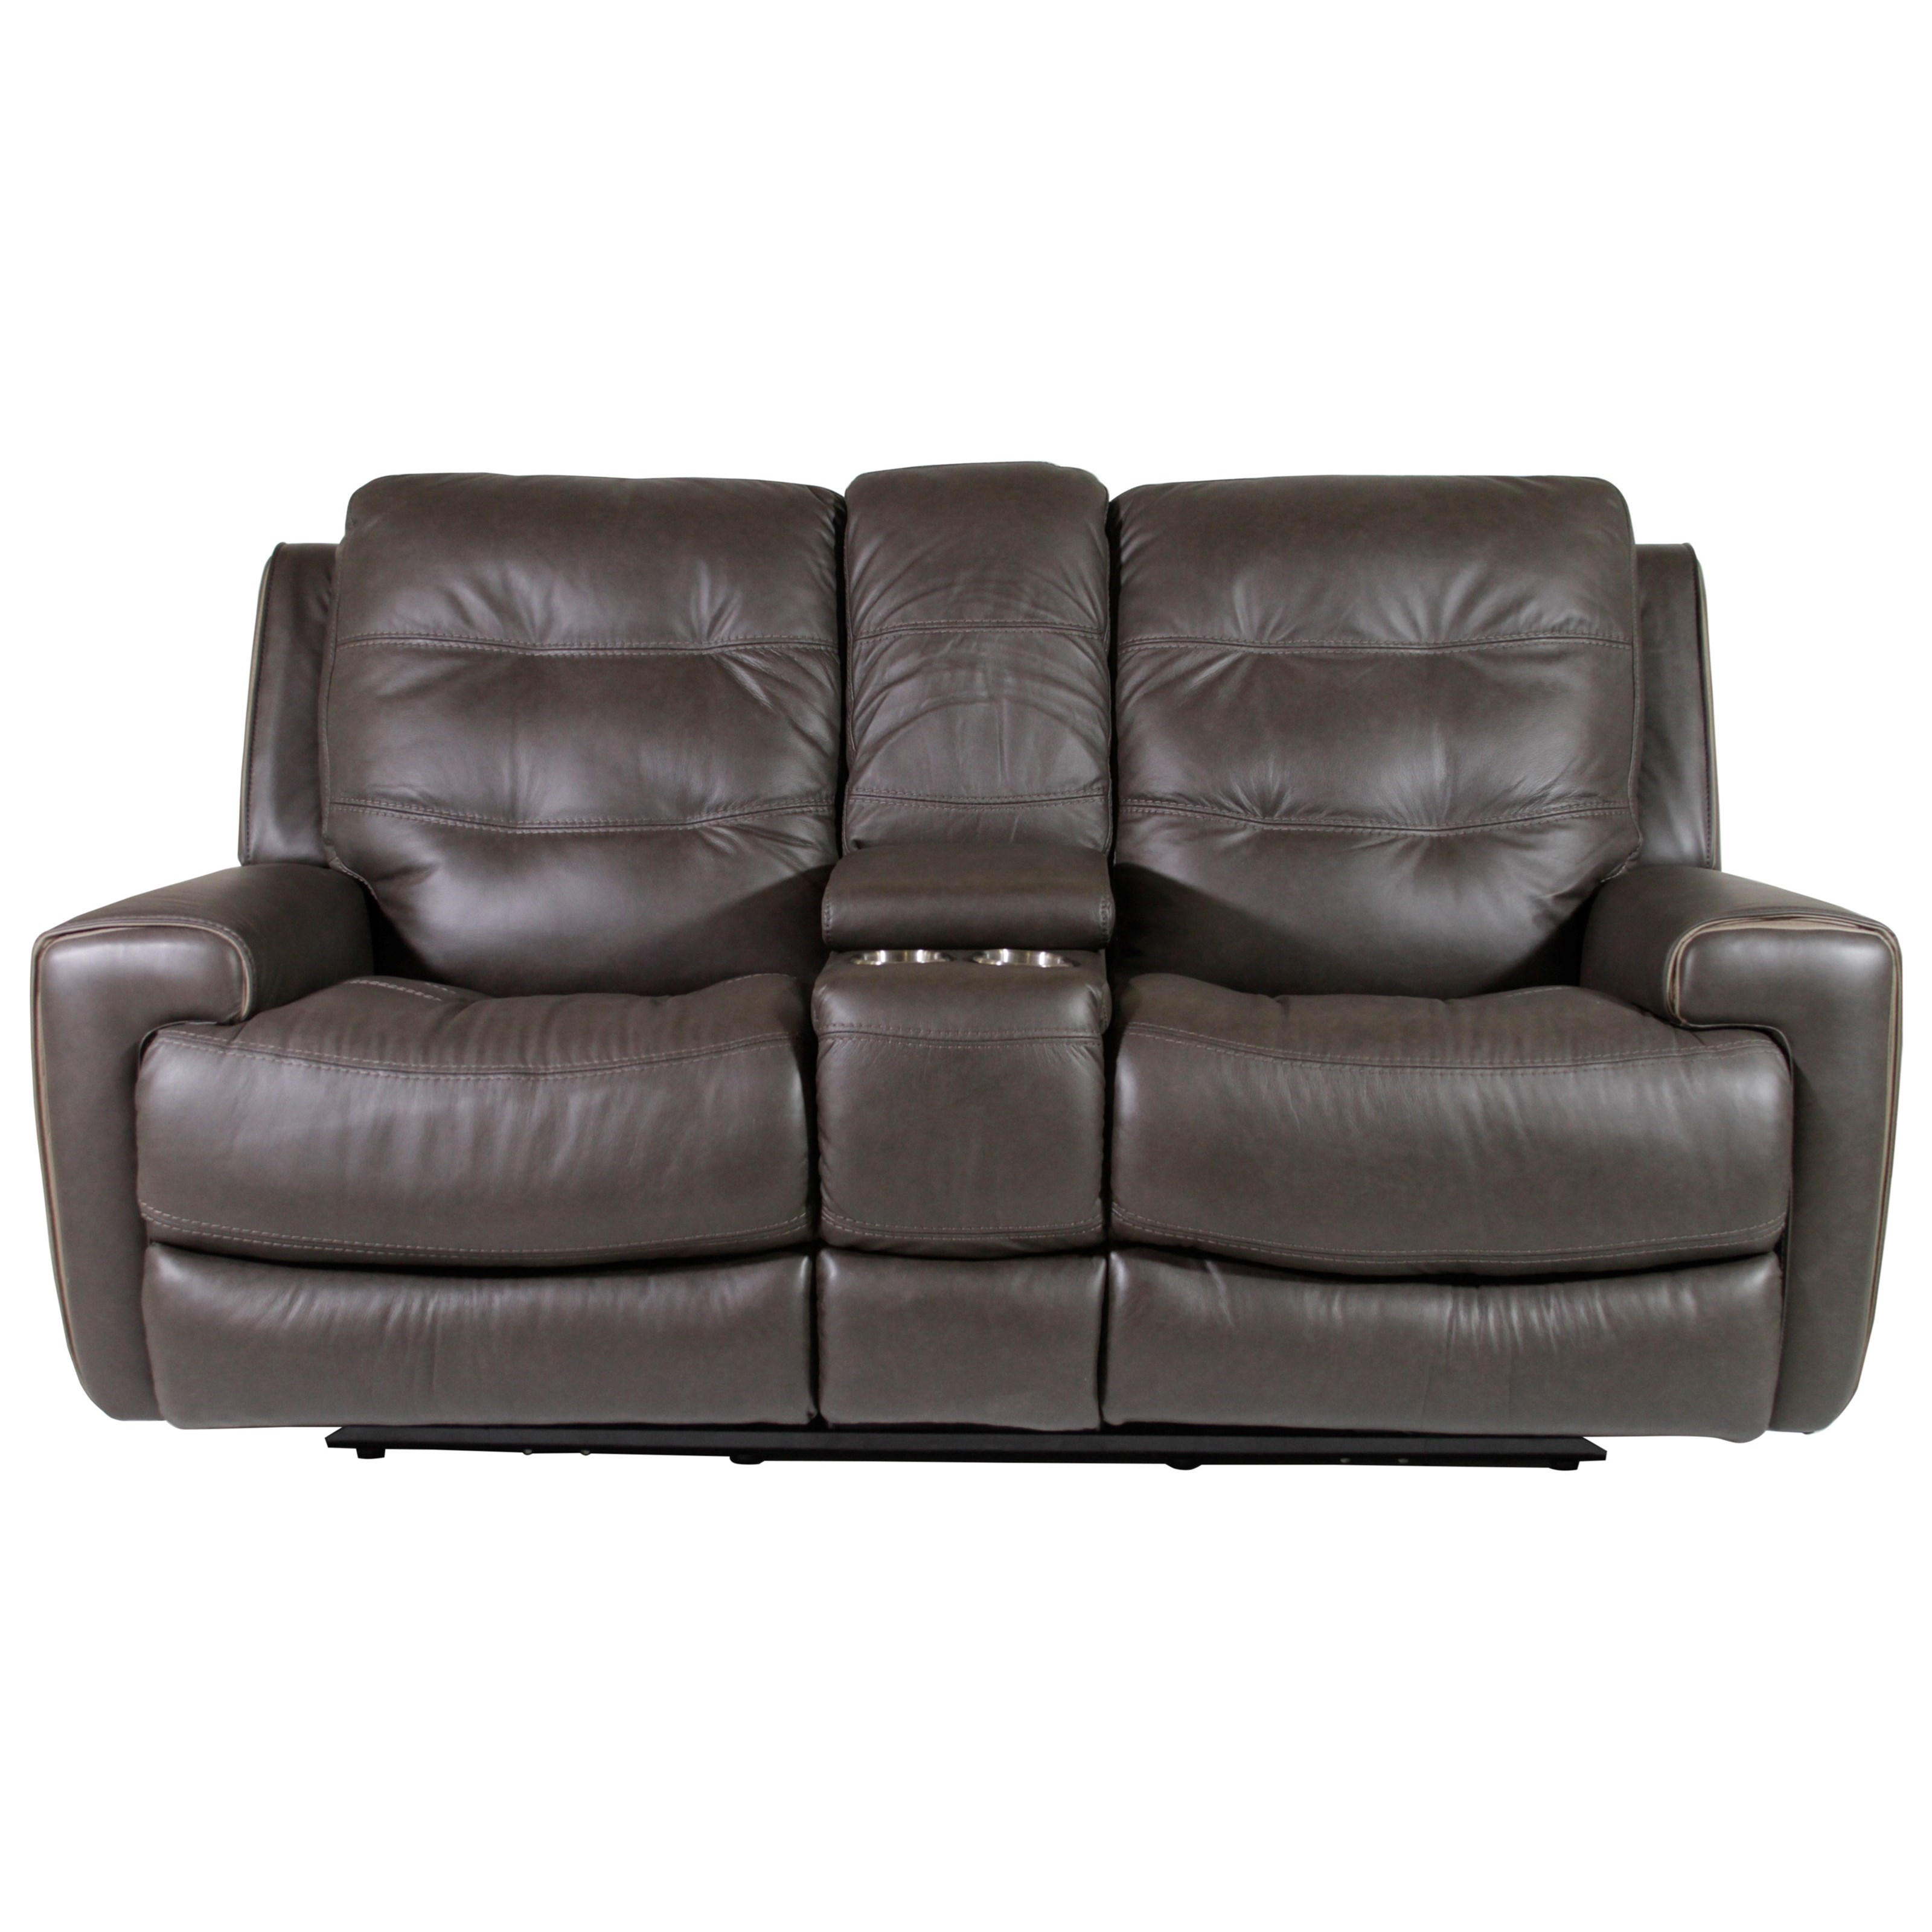 Flexsteel Wicklow Power Reclining Loveseat with Console - Item Number: 1681-64PH-326-70